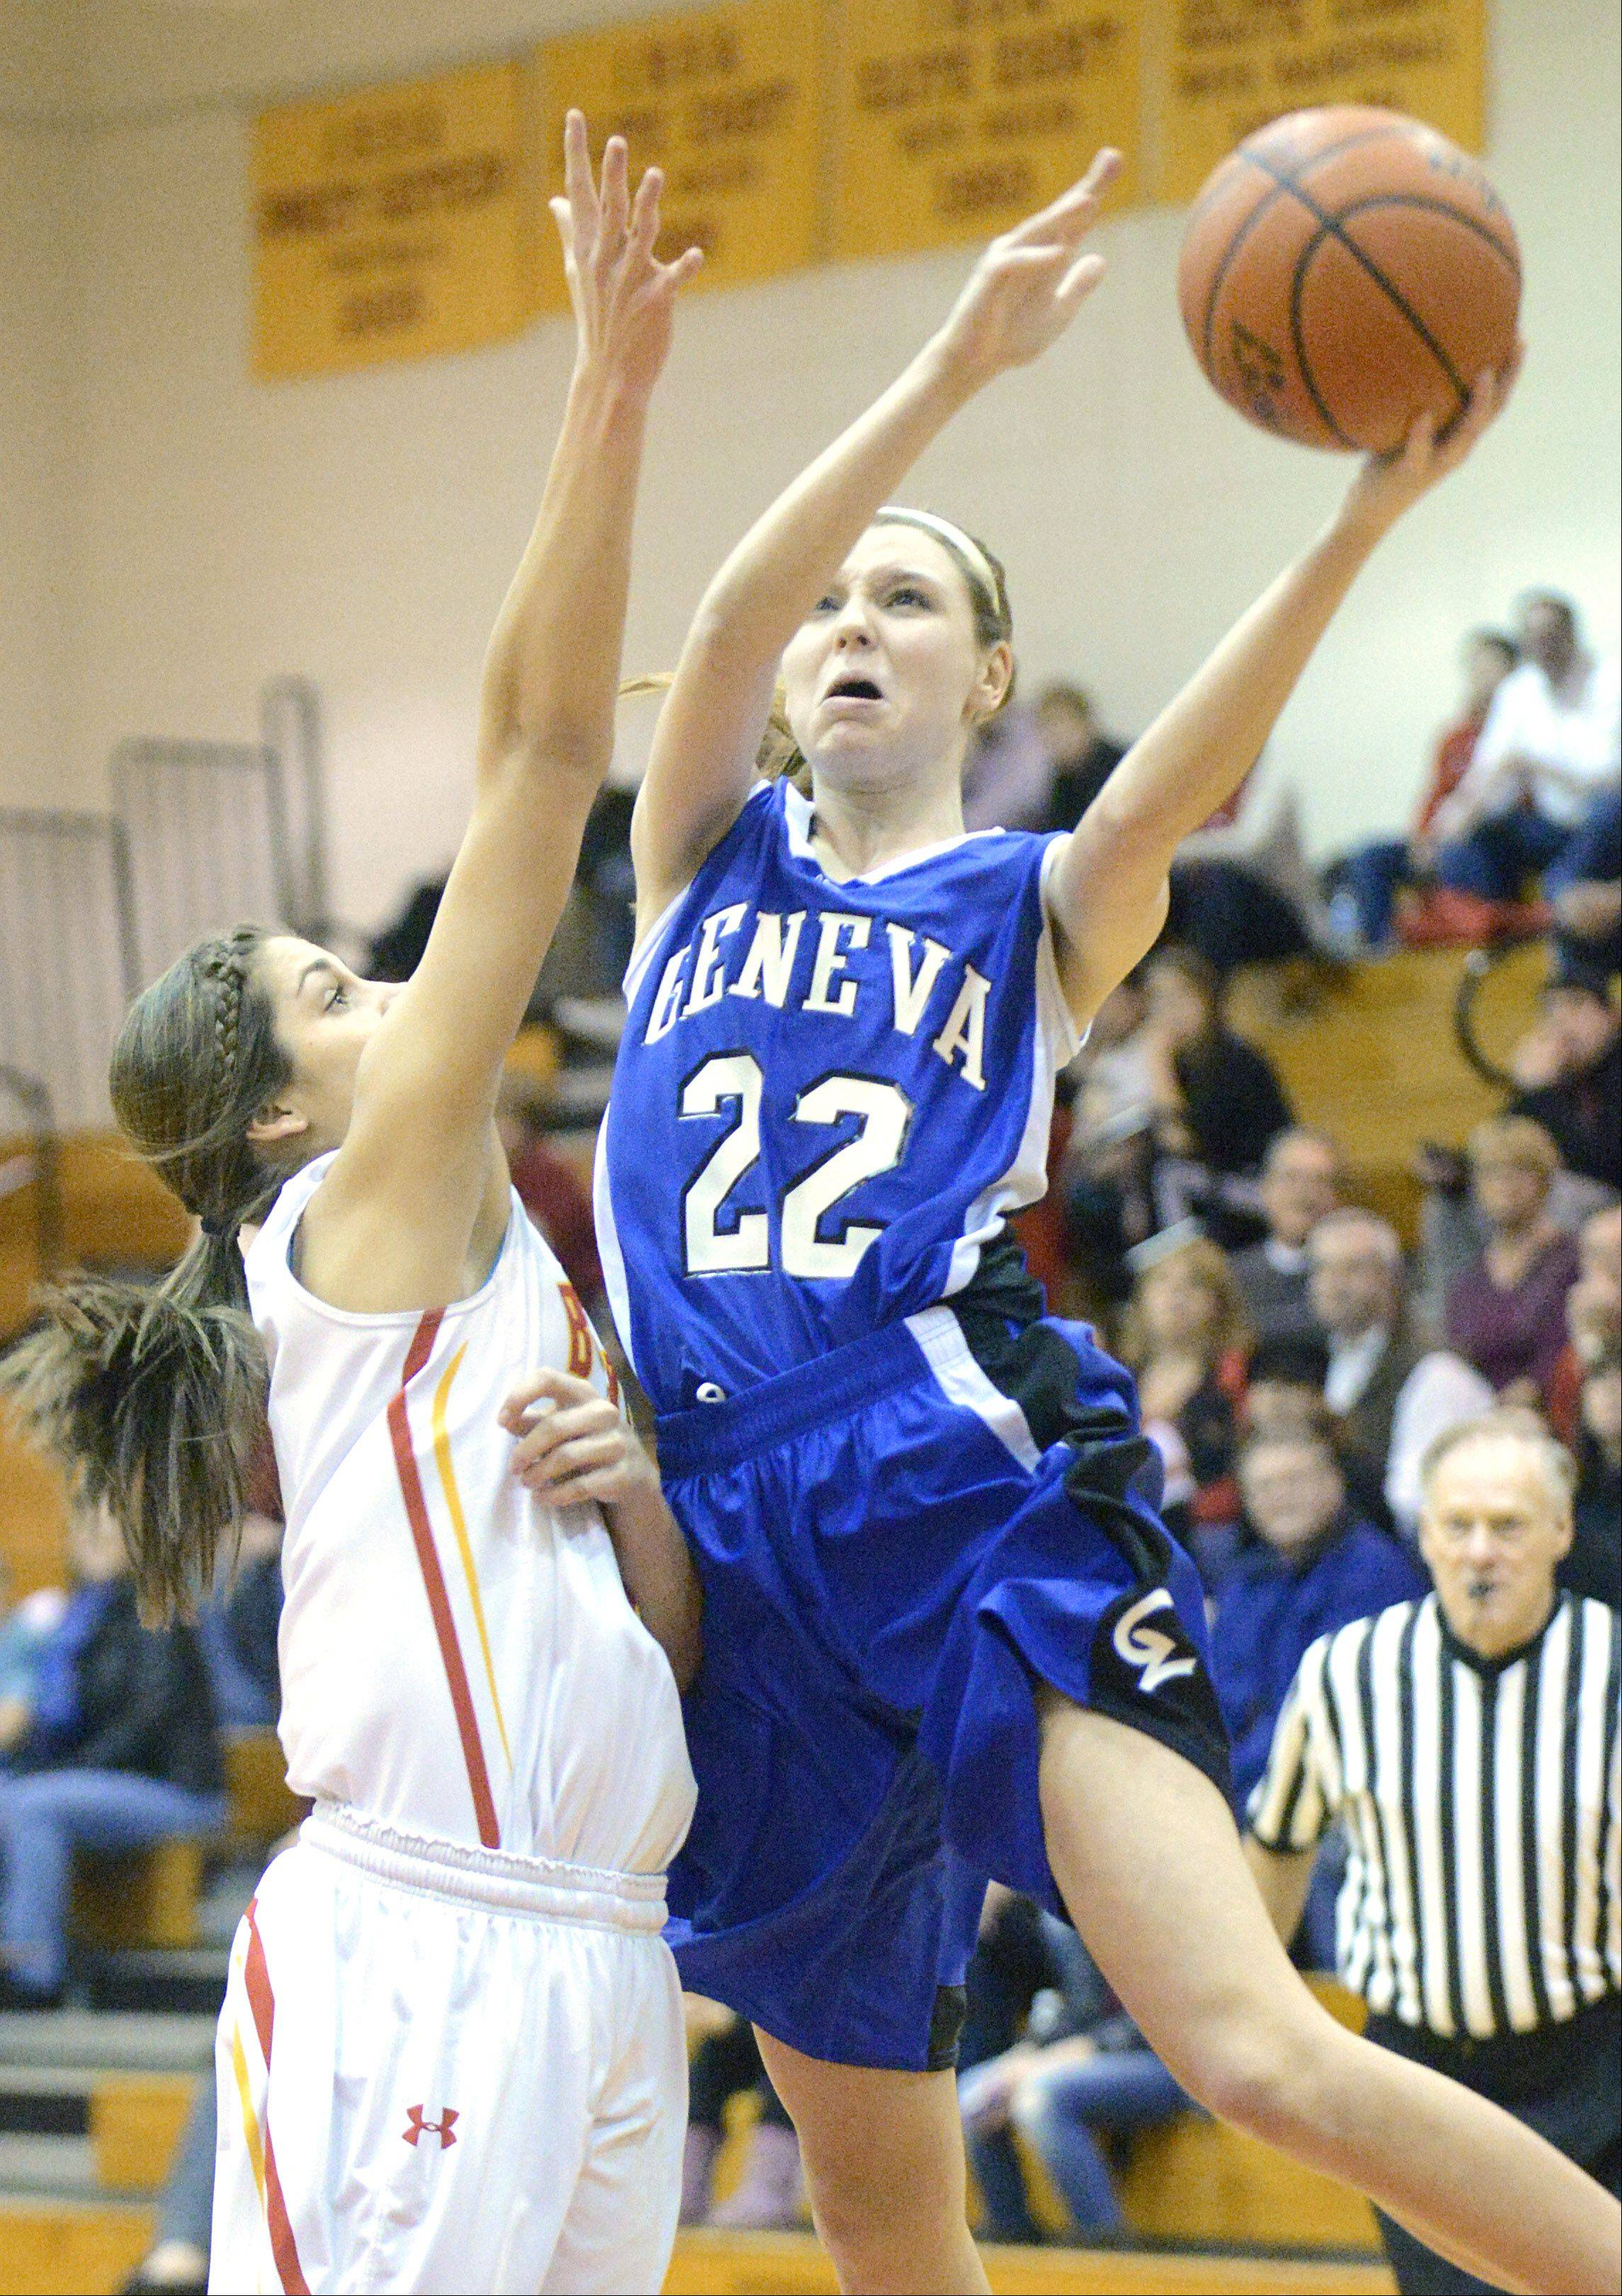 Geneva's Morgan Seberger takes a shot past a block by Batavia's Miranda Grizaffi in the first quarter.